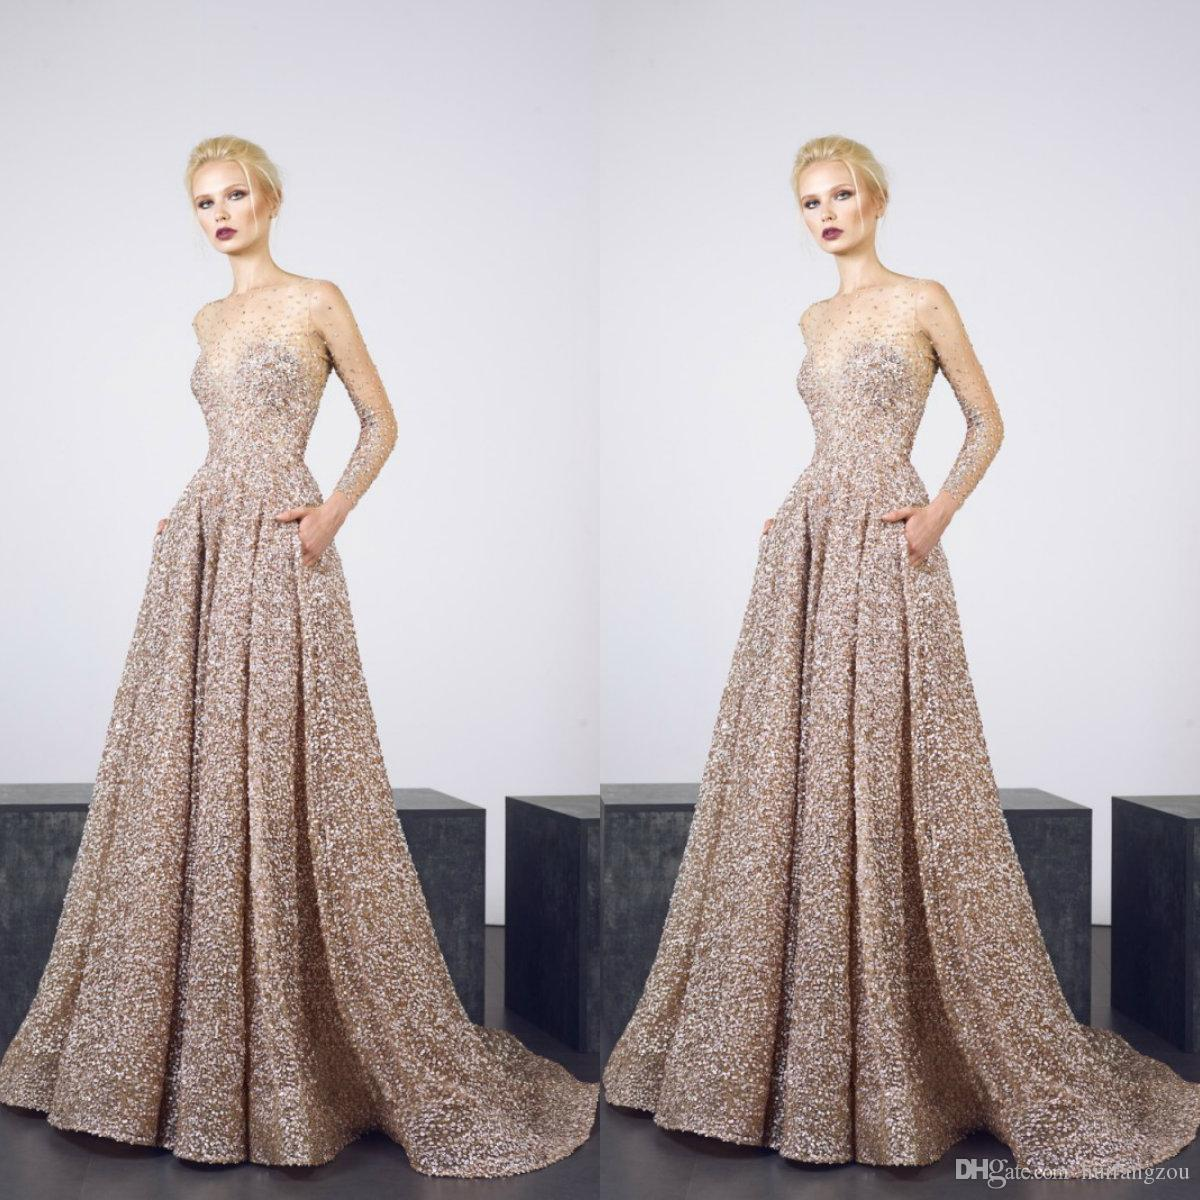 Luxury Gold Prom Dresses 2019 Sheer Neck Long Sleeves Crystal Sequins Evening Gowns Sweep Train Cocktail Party Dresses Custom Made